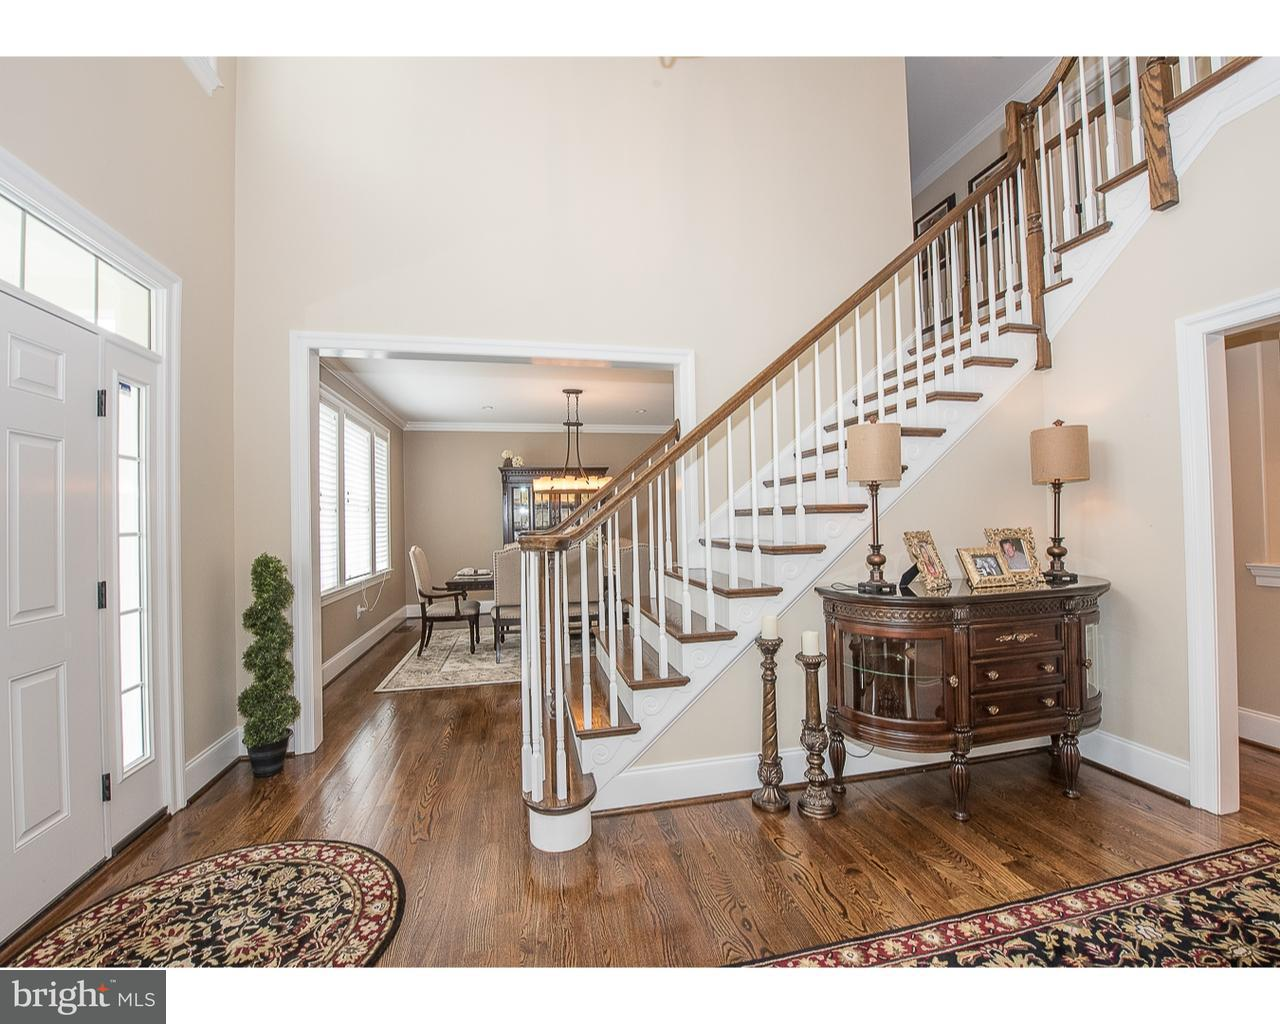 1681 VALLEY RD, NEWTOWN SQUARE - Listed at $899,900, NEWTOWN SQUARE